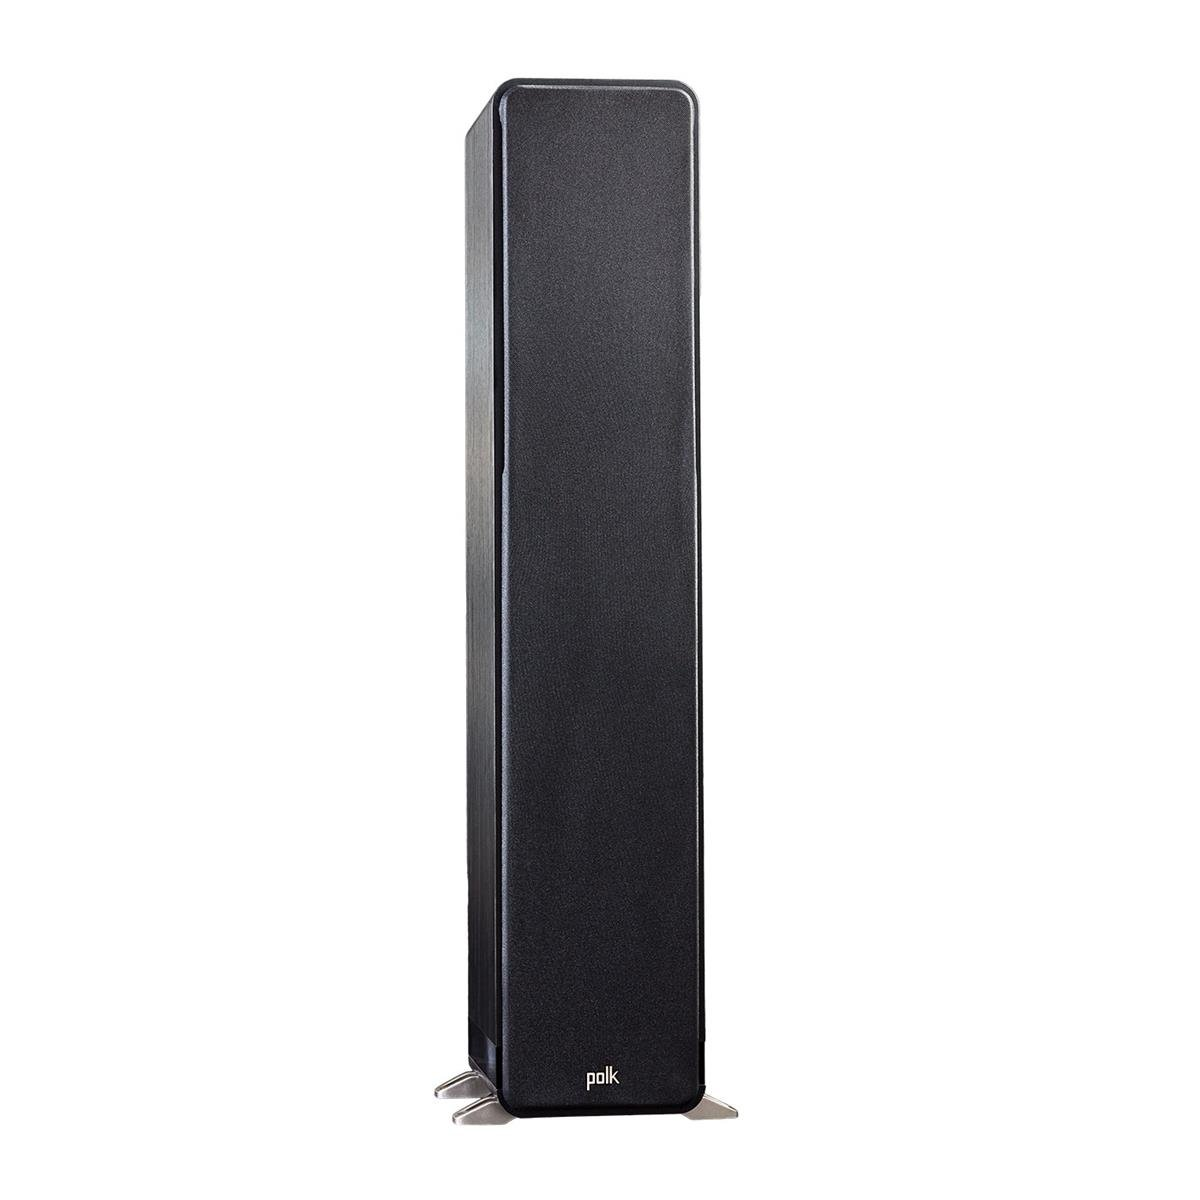 Polk Audio Signature S50 American HiFi Home Theater Tower Speaker by Polk Audio